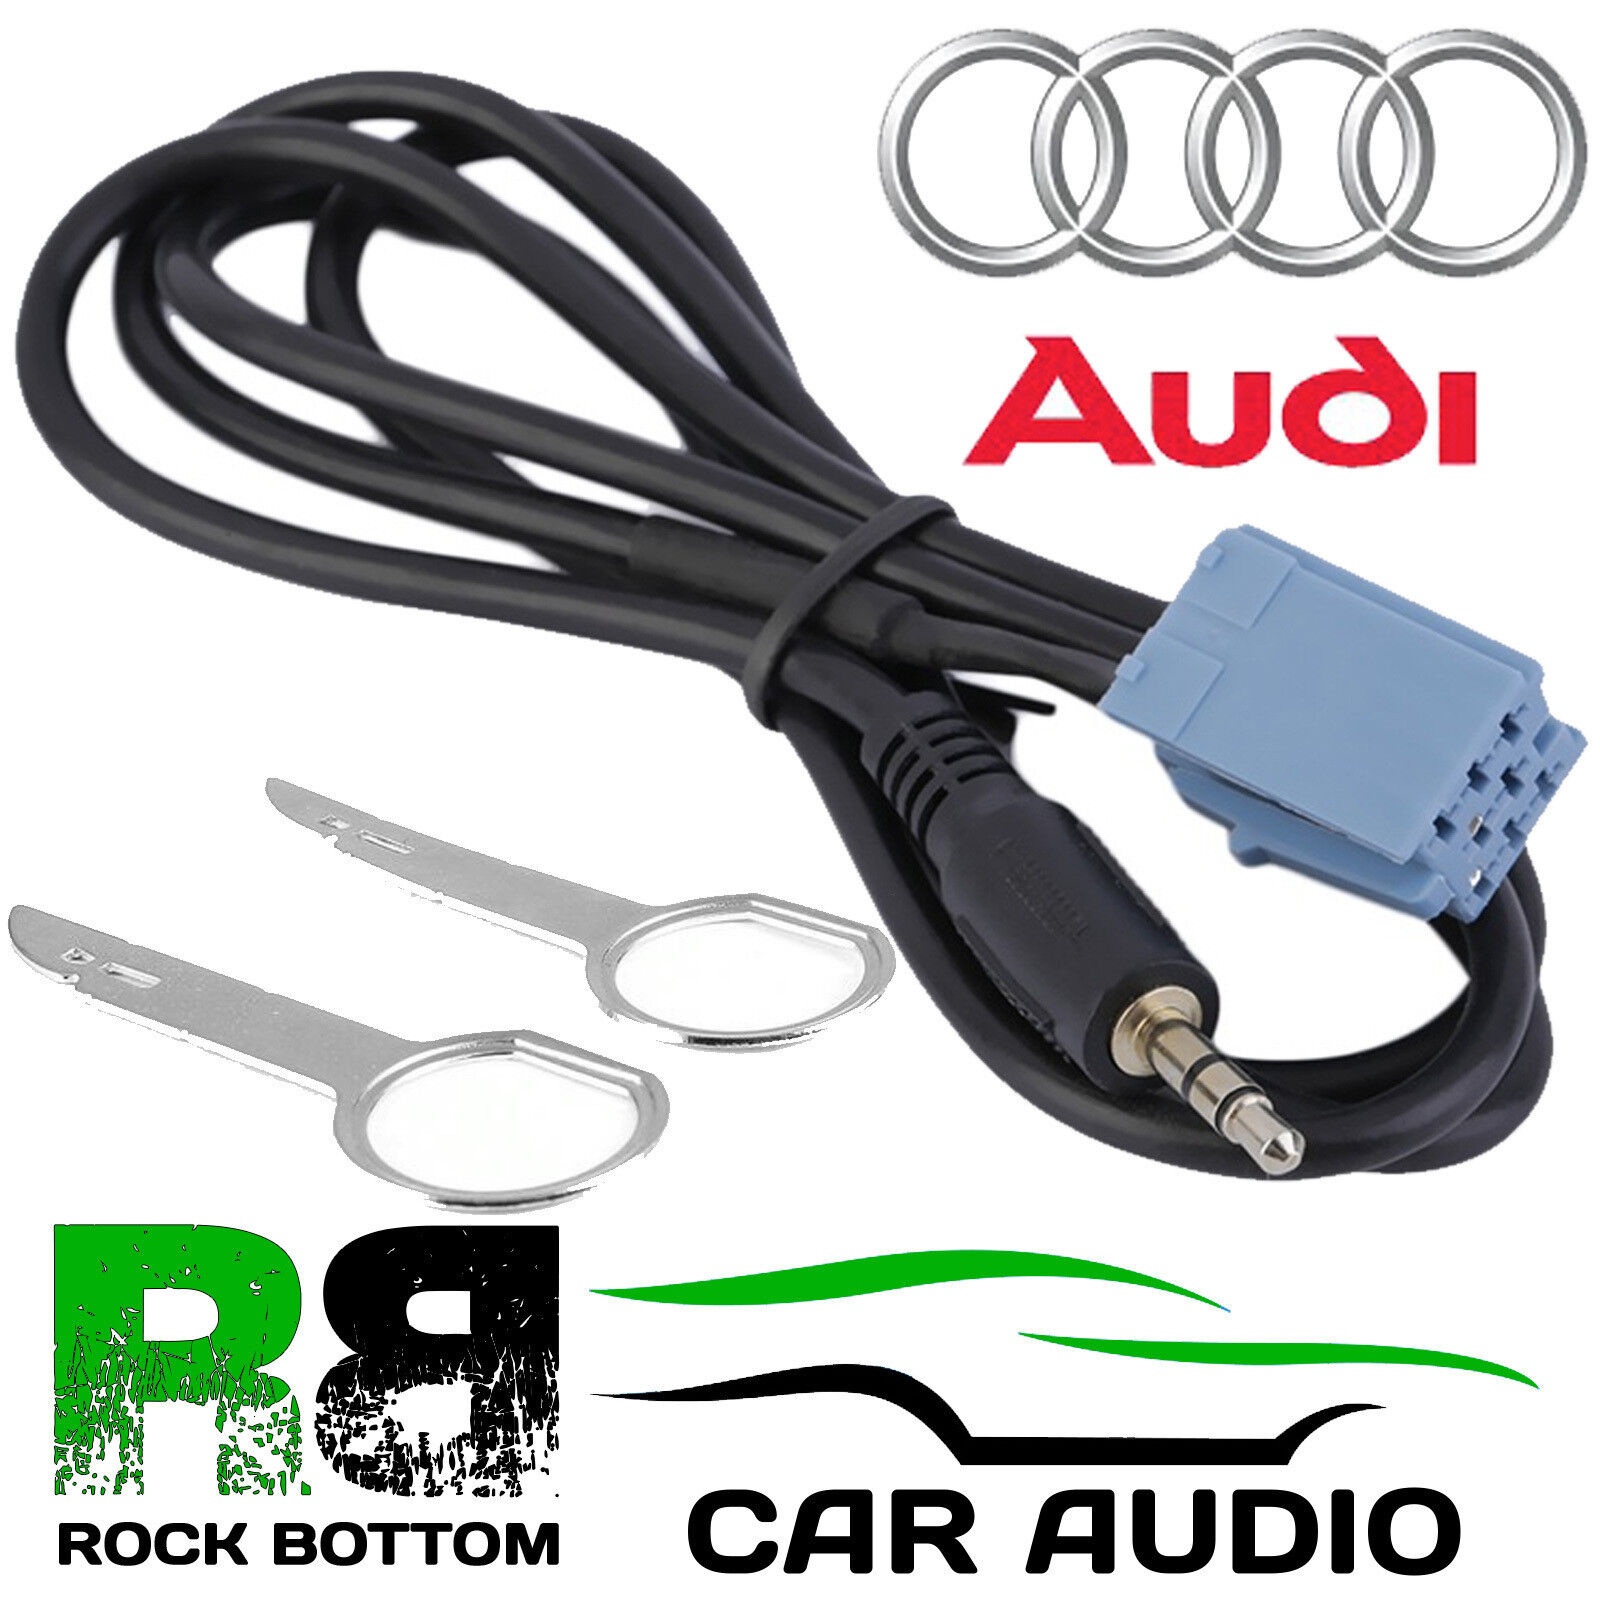 audi concert factory fitted car mp3 ipod iphone aux in. Black Bedroom Furniture Sets. Home Design Ideas